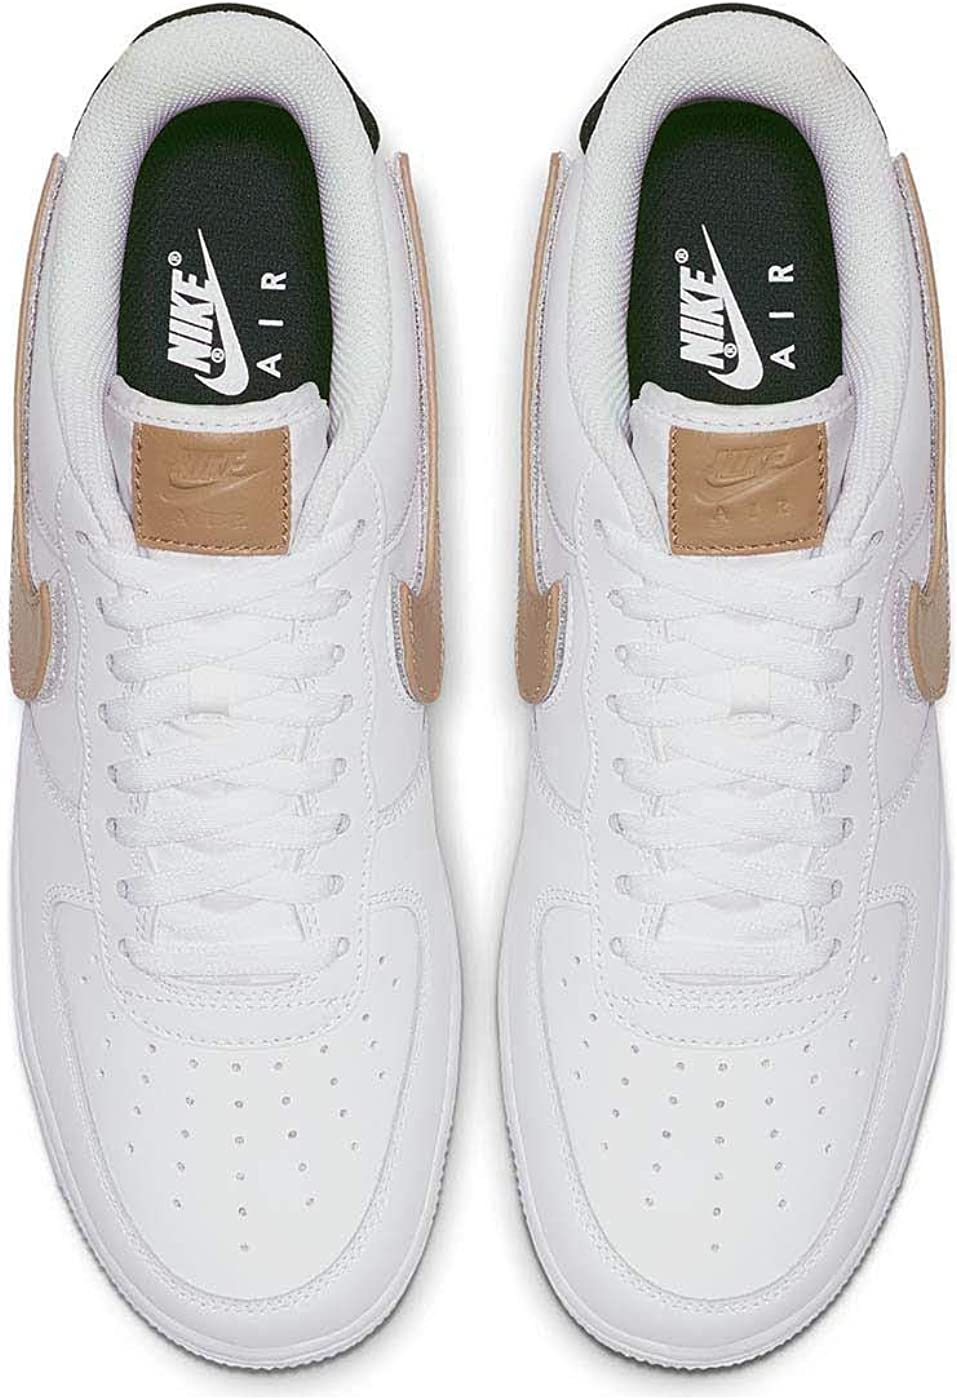 Nike Air Force 1 07 LV8 3 Hommes Trainers Ct2253 Sneakers Chaussures Blanc